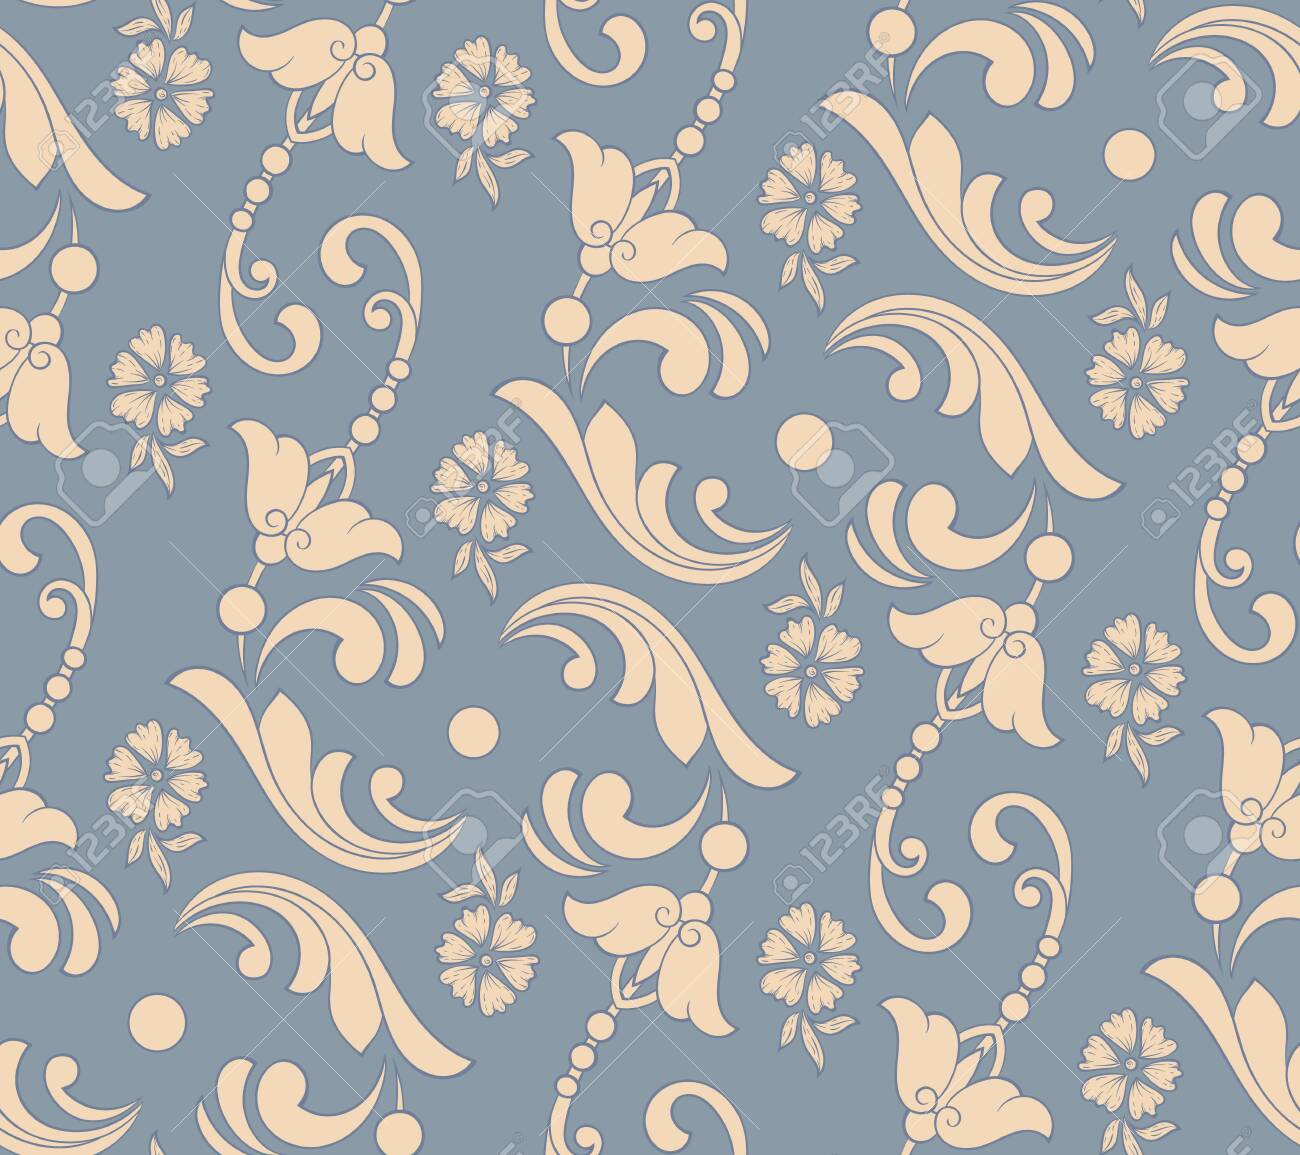 Vector flower seamless pattern element. Elegant texture for backgrounds. Classical luxury old fashioned floral ornament, seamless texture for wallpapers, textile, wrapping - 138970920